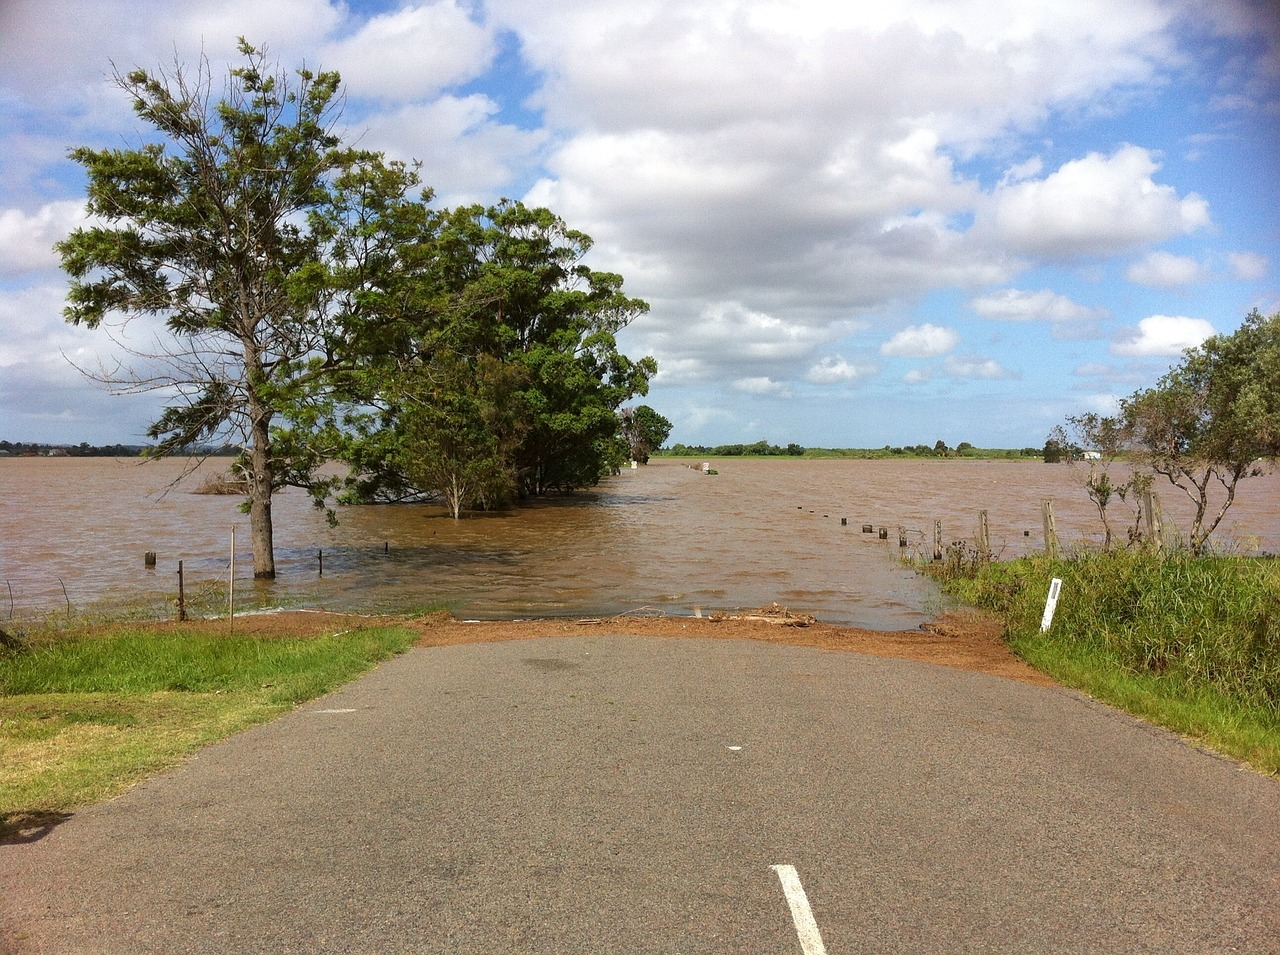 Architects: Can You Make the Most of Flood Risk?